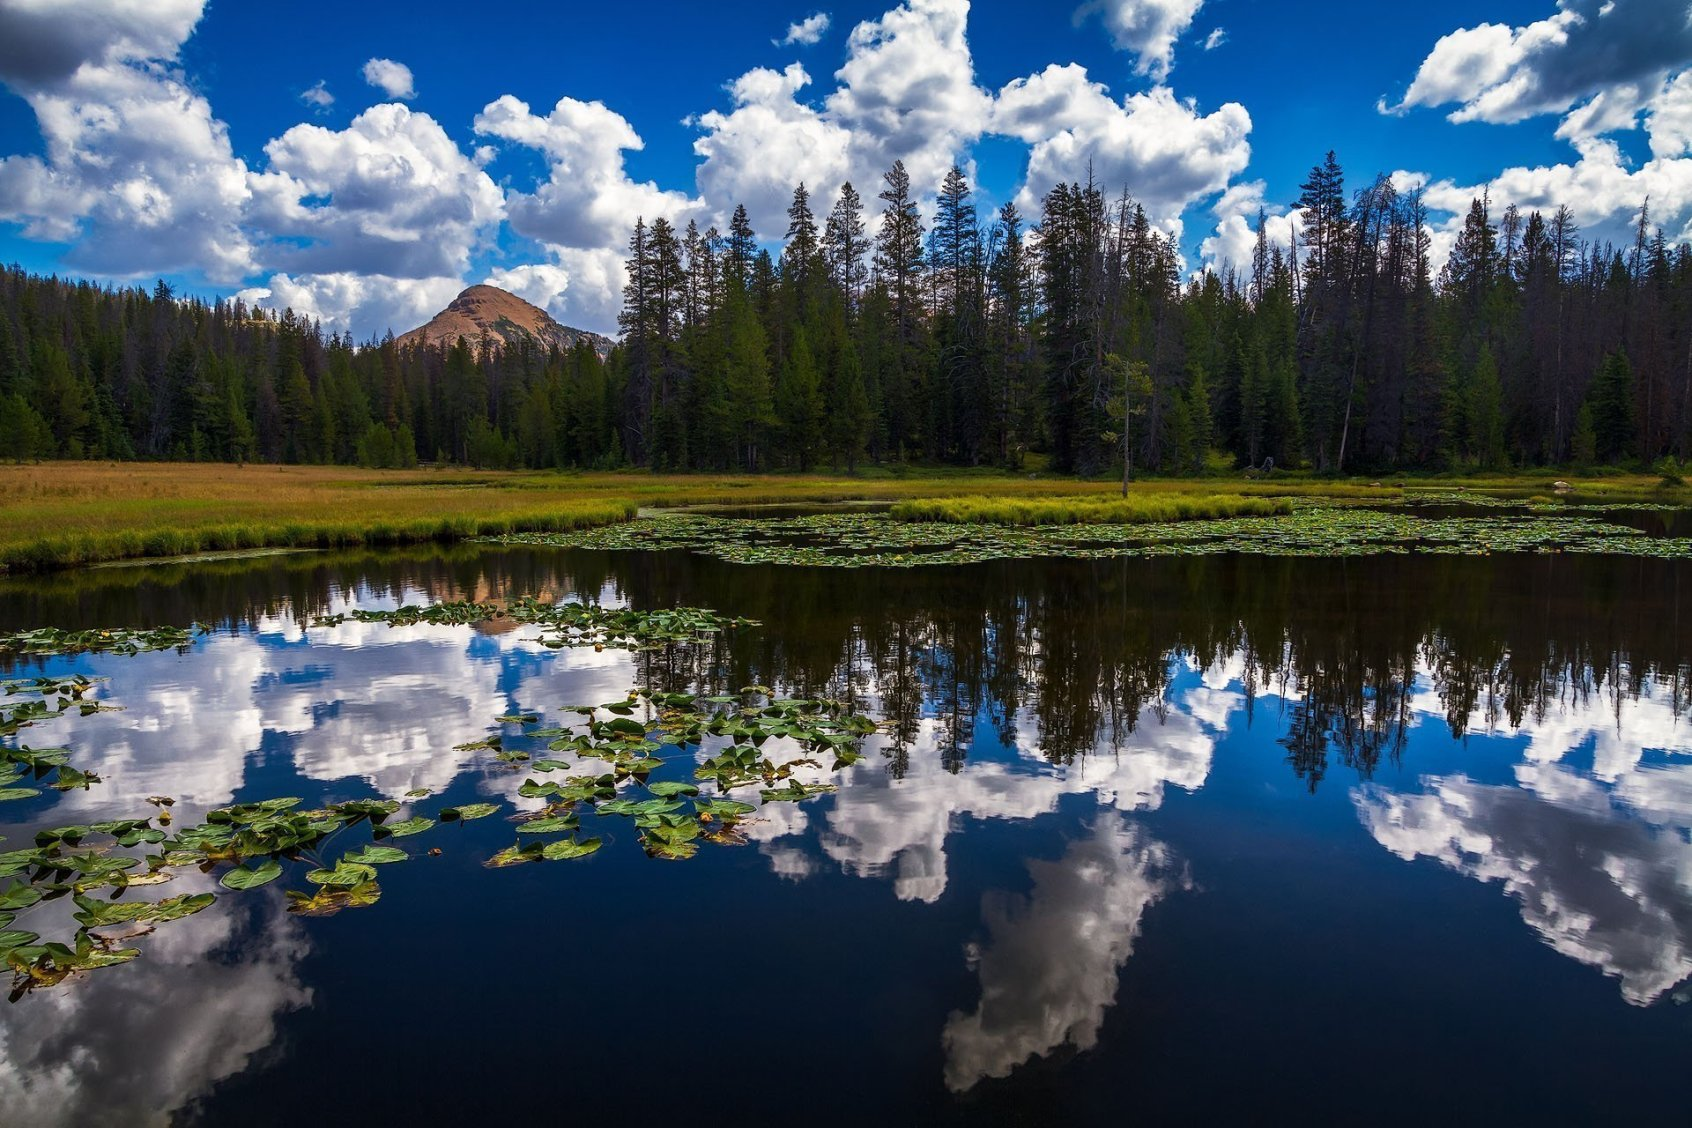 Lake Marion Cloudy Reflection - Utah Landscape Photography